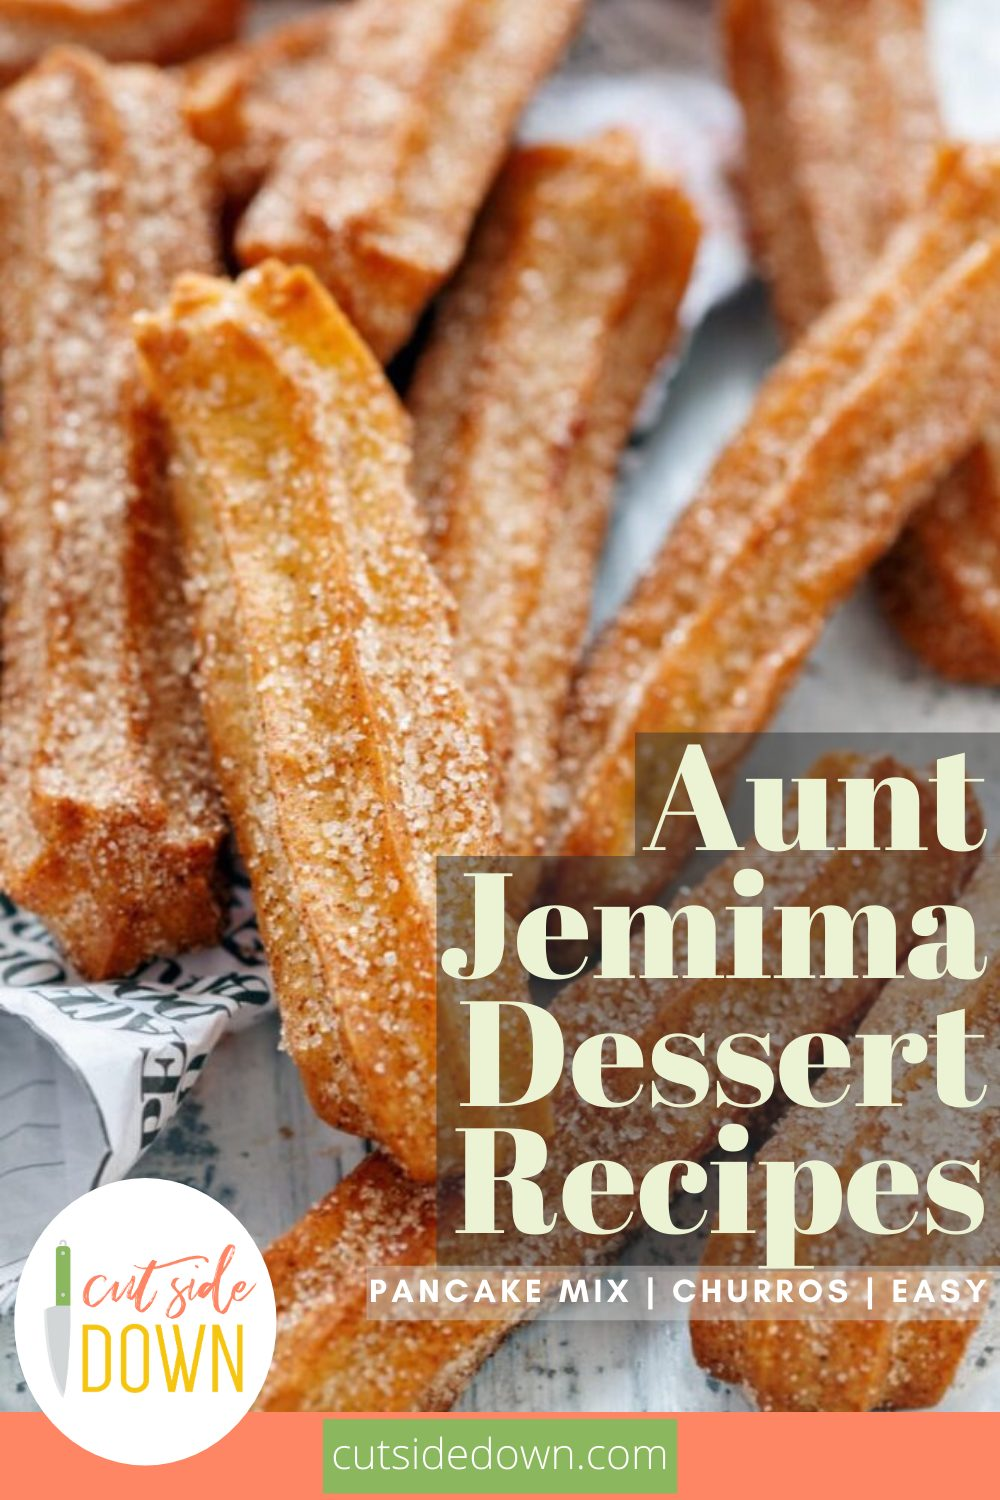 Before they fly off the shelves, go grab yourself some Aunt Jemima's Pancake and Waffle mix so you can bake up these delicious desserts! From cakes to cookies to churros, Aunt Jemima's Pancake and Waffle mix is made for more than just breakfast. #TheCutSideDownBlog #AuntJemimaDessertRecipes #AuntJemimaPancakeMixRecipes #AuntJemimaCakeRecipes